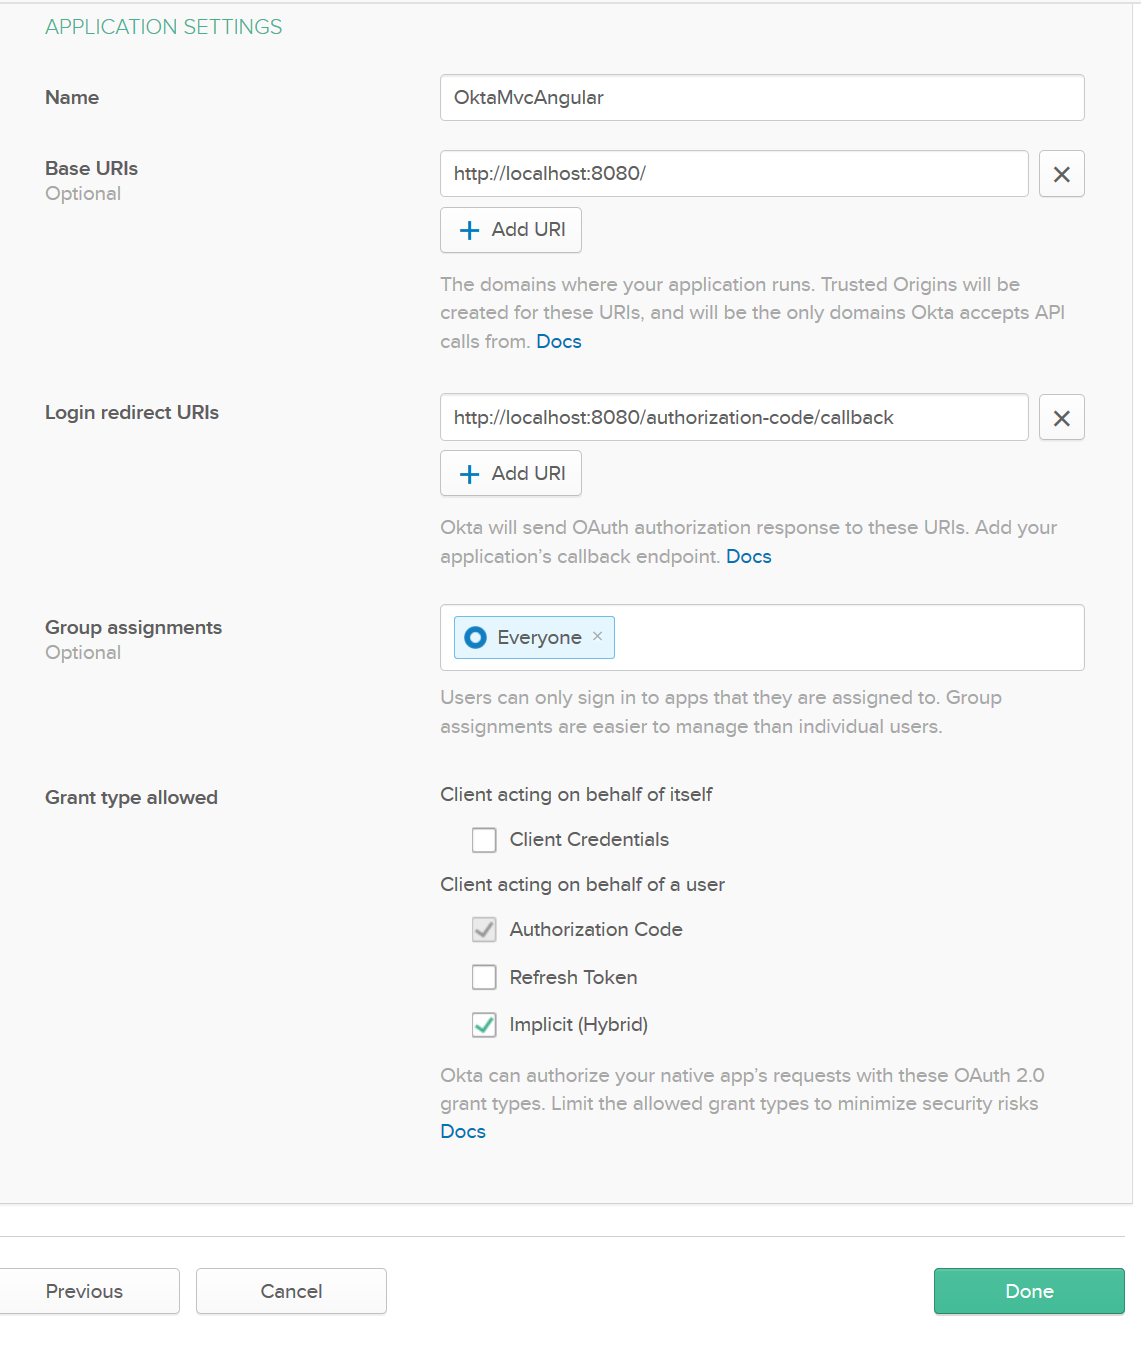 okta application settings